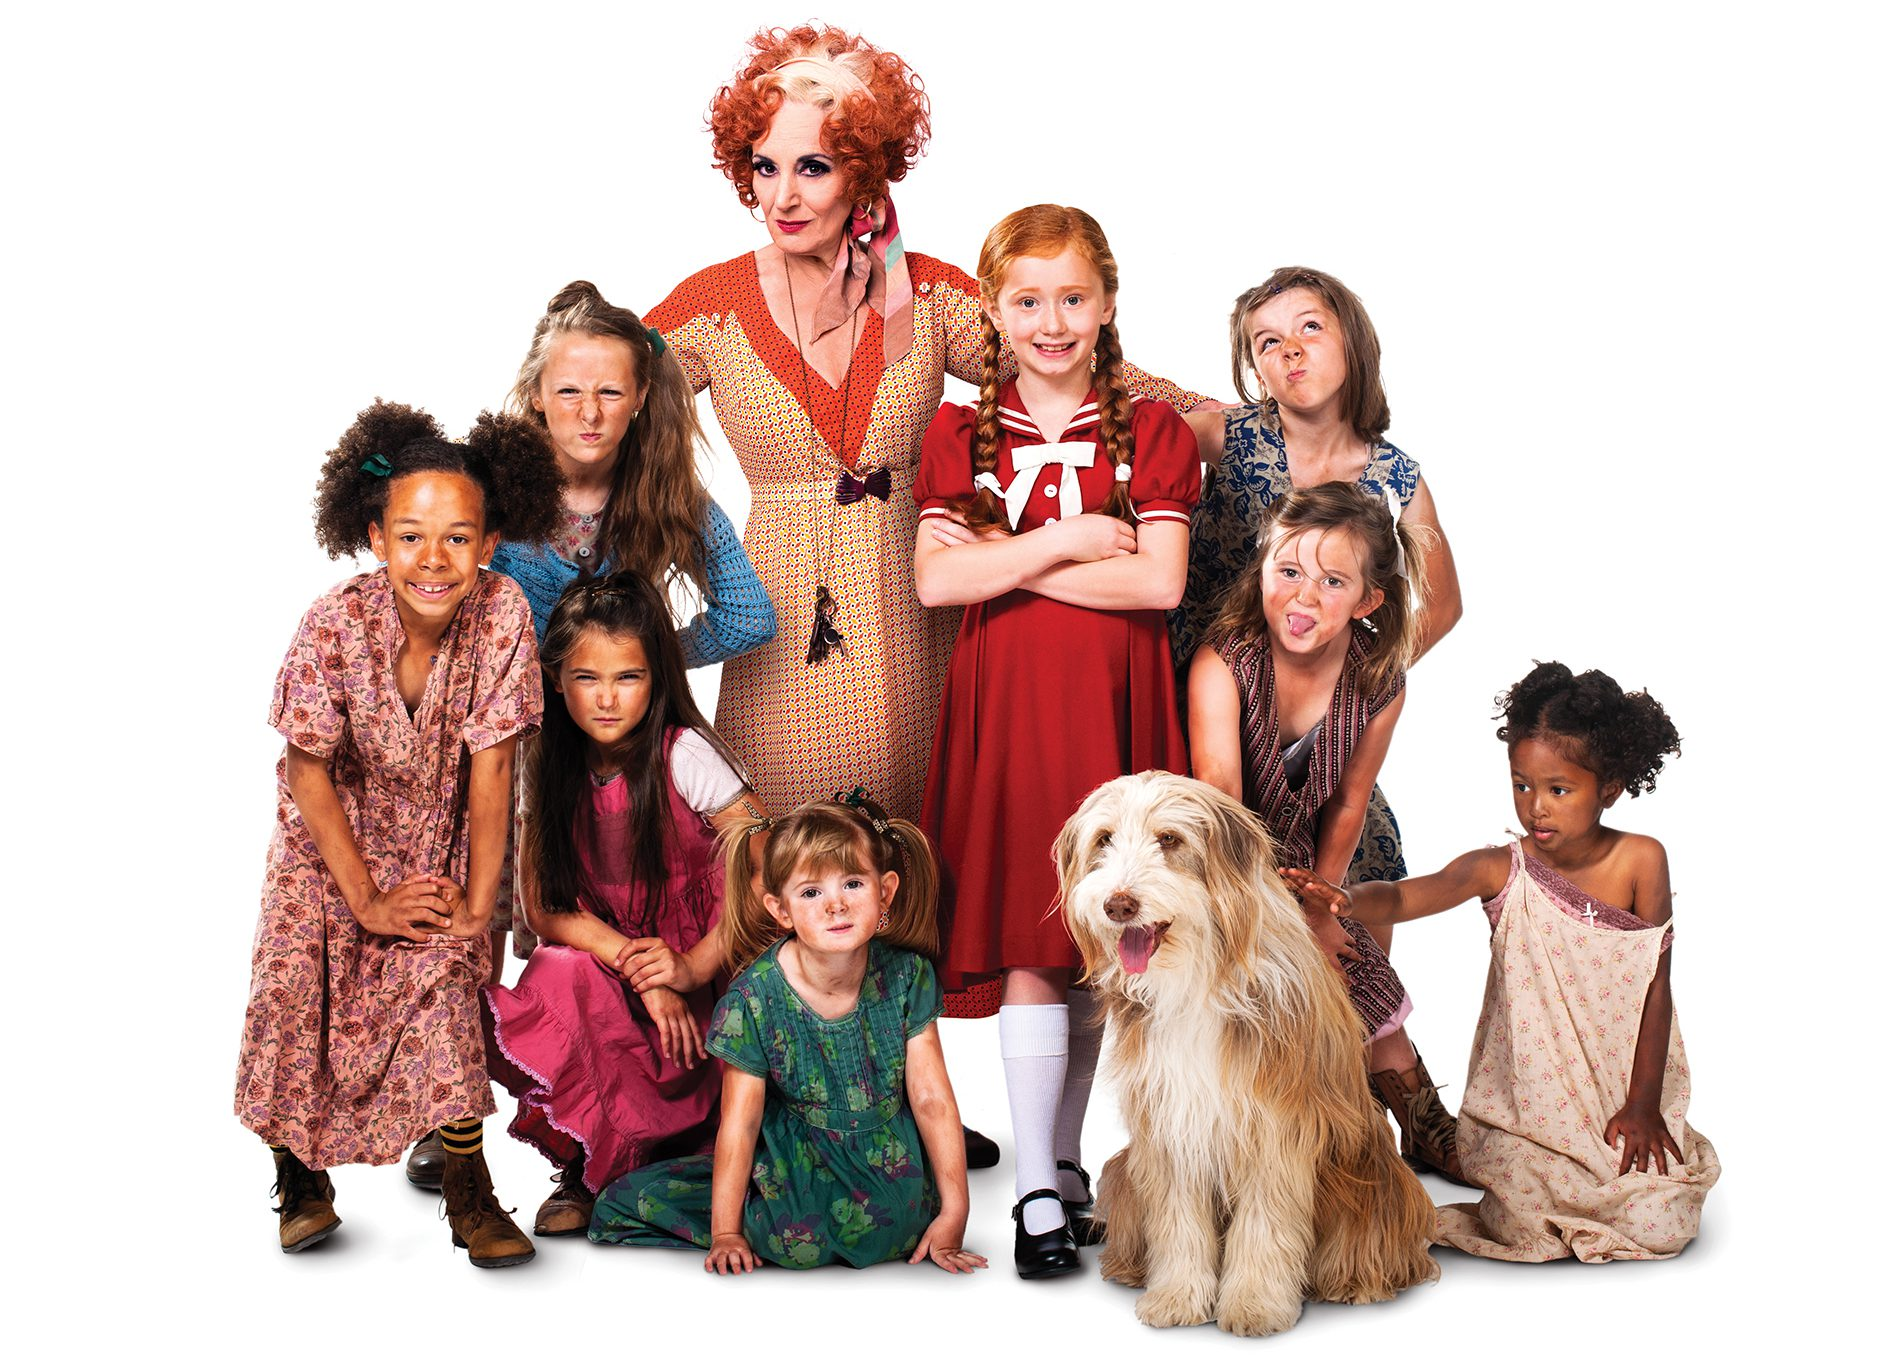 ANNIE - Lesley Joseph as Miss Hannigan with Annie and orphans. Photo credit Matt Crockett